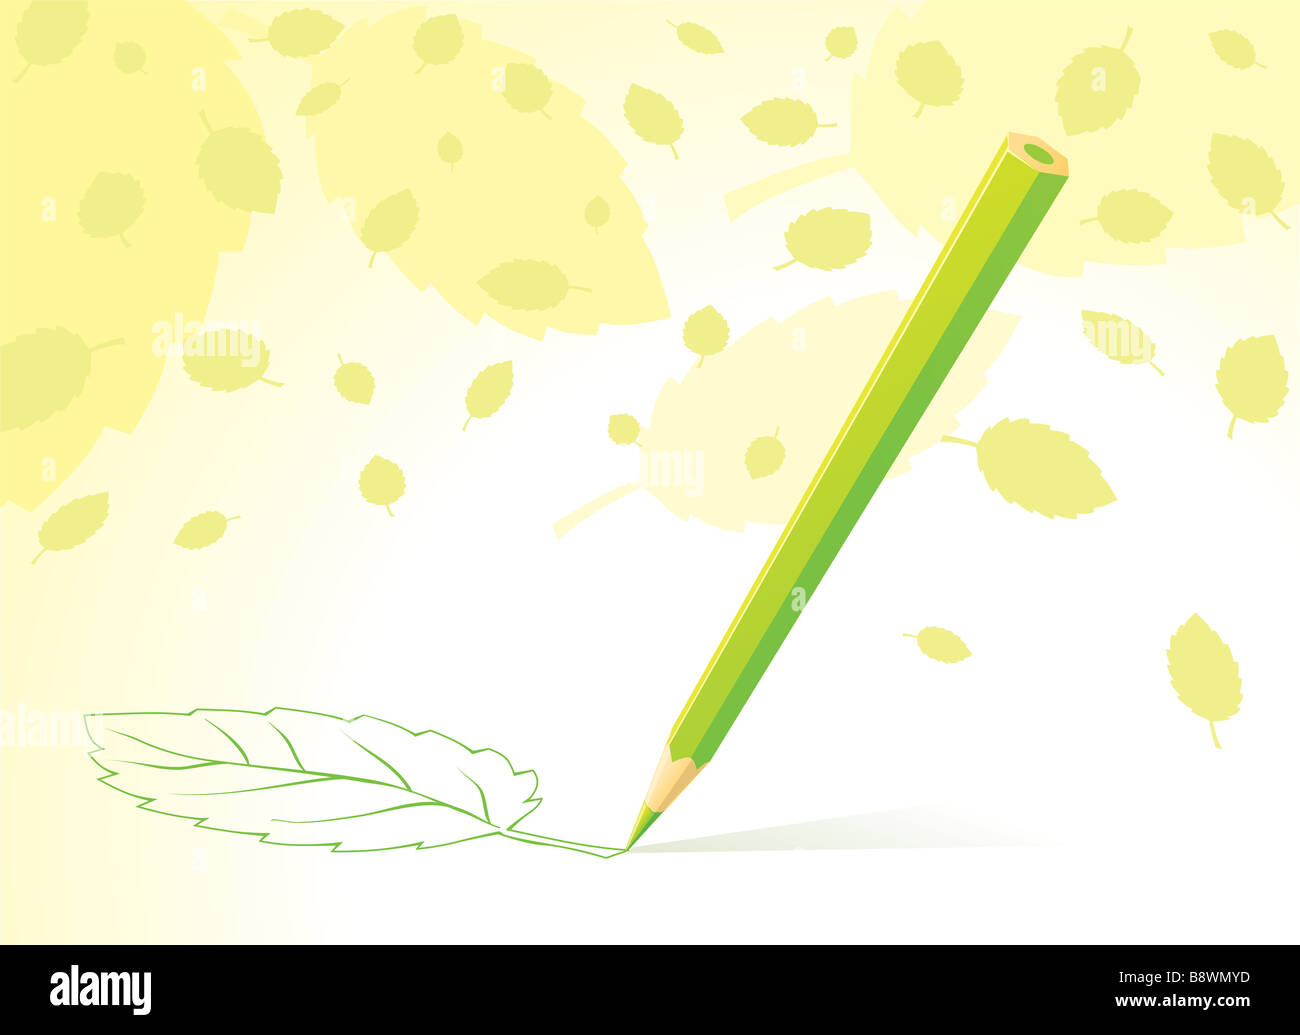 Illustration of the pen drawing green leaf - Stock Image